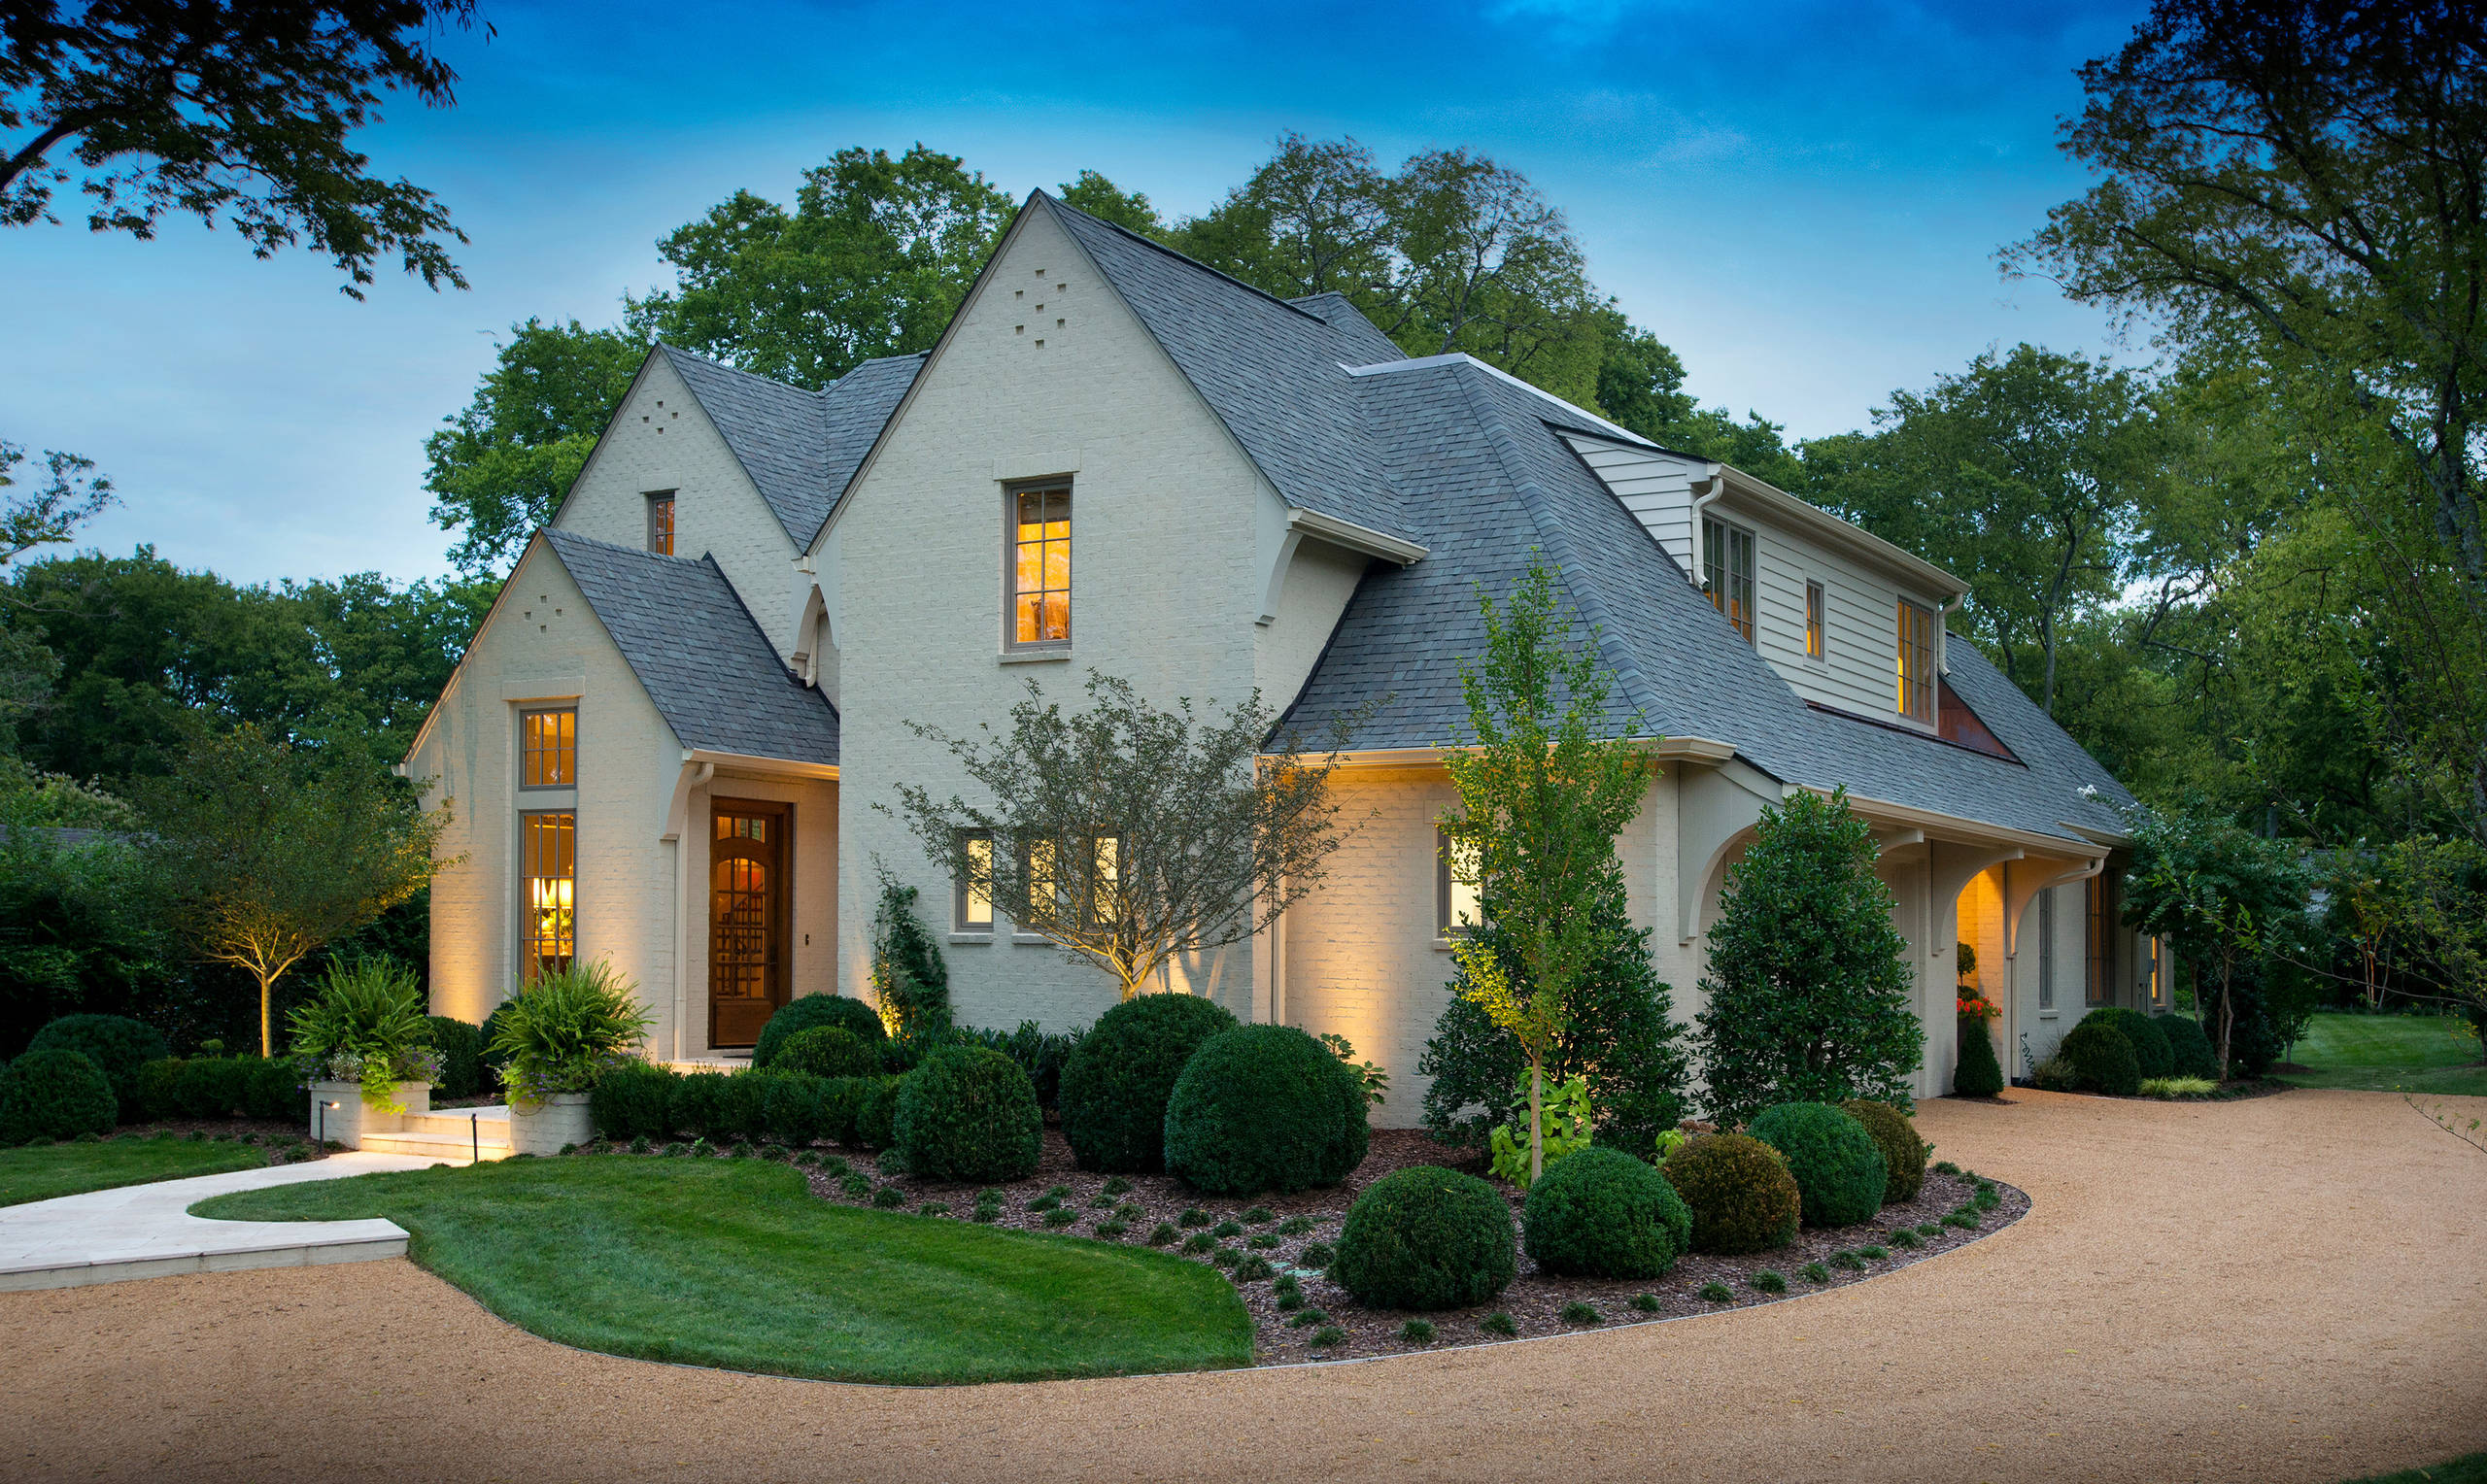 Westview Residence, Belle Meade Tennessee